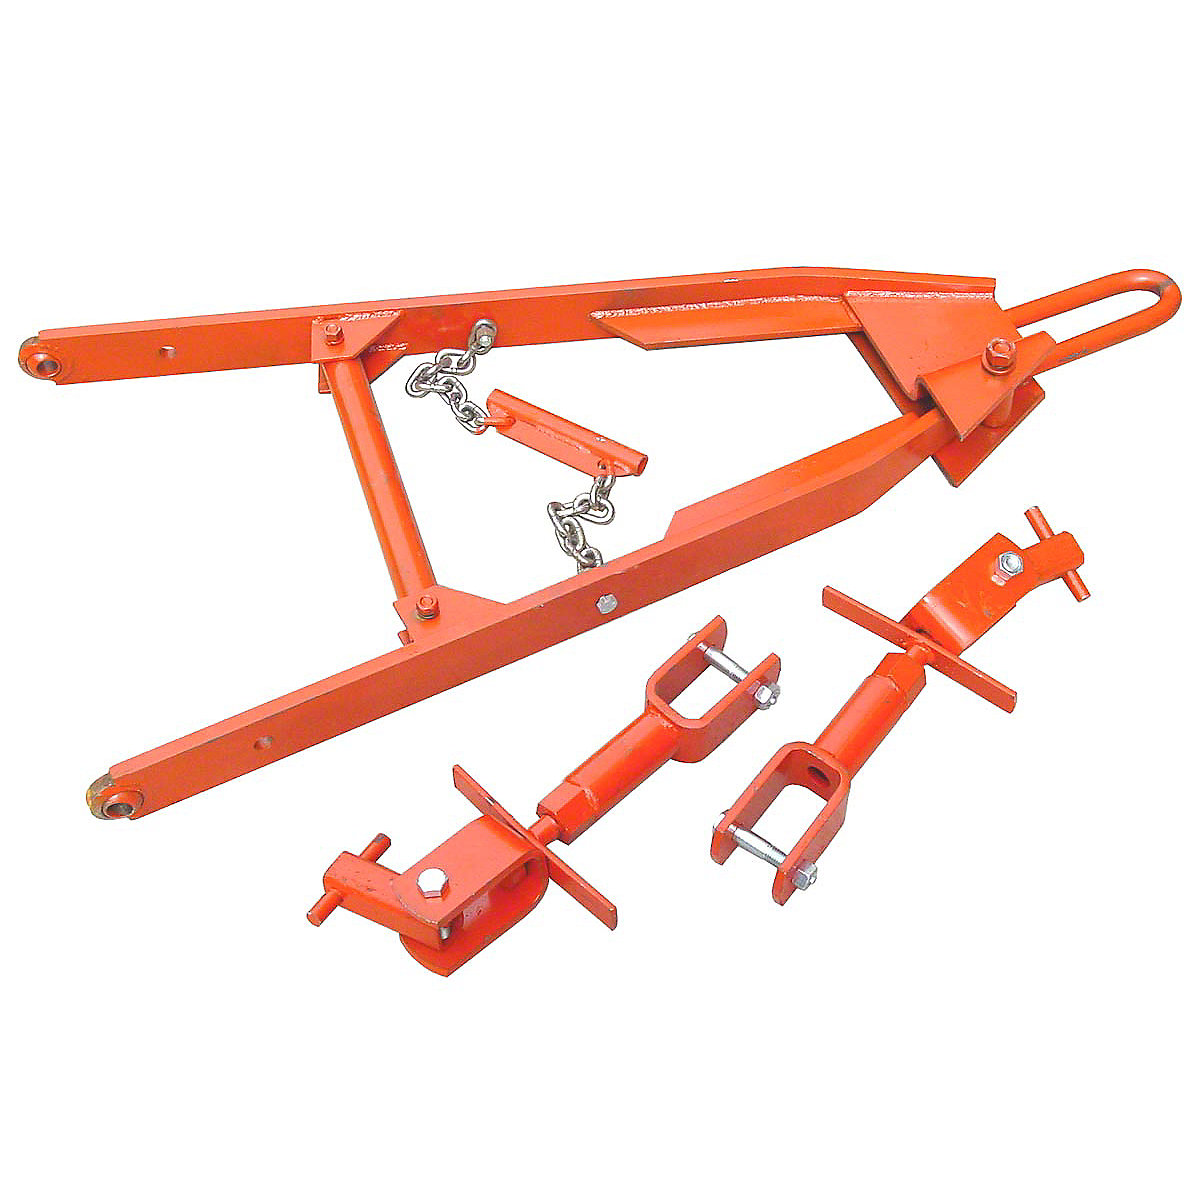 Tractor 3 Point Hitch Conversions : Acs point hitch conversion kit